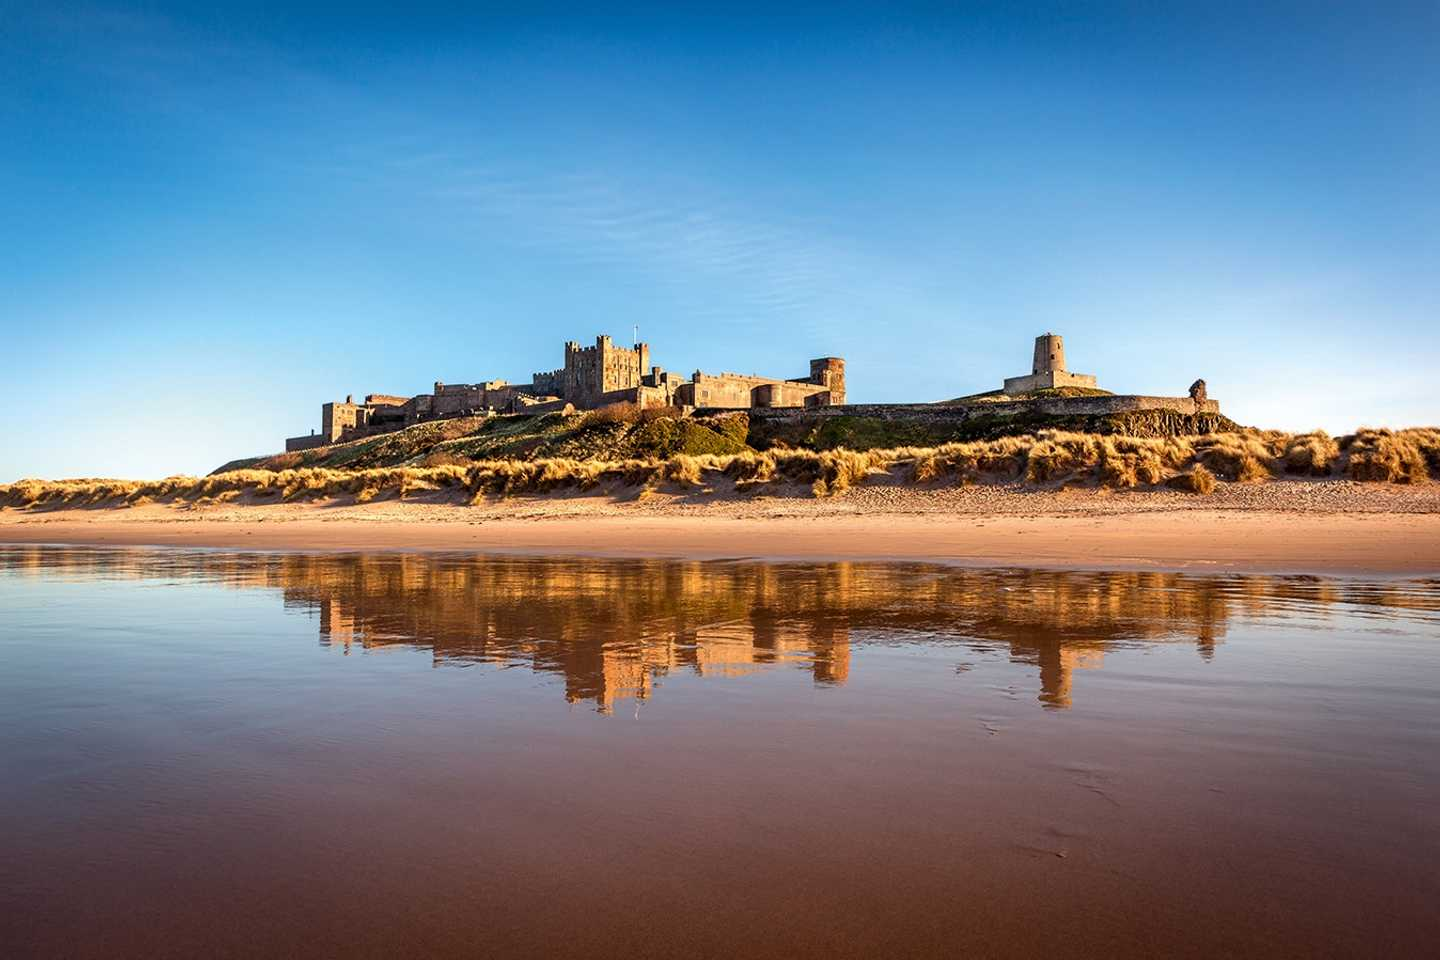 A view of Bamburgh Castle high up on the hill from the beach